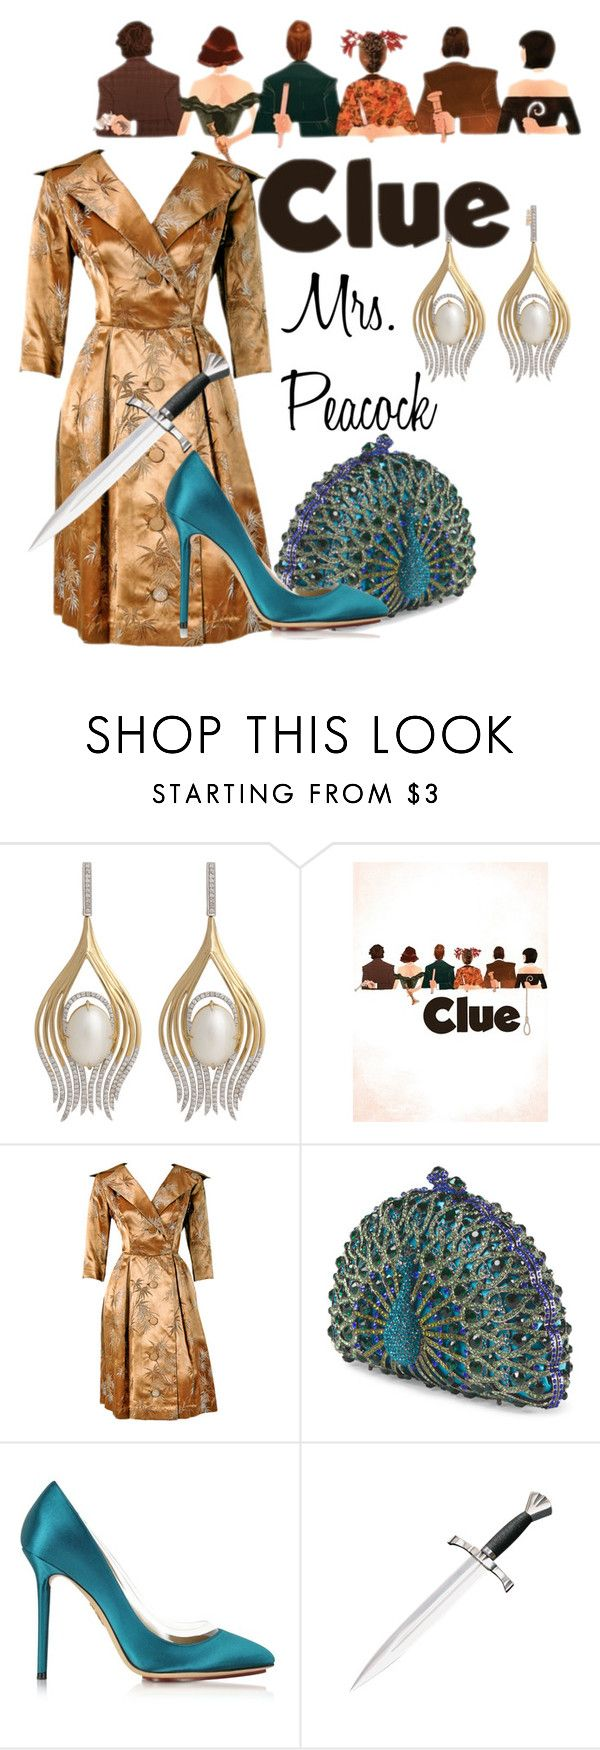 """Mrs. Peacock from Clue"" by laniocracy ❤ liked on Polyvore featuring Ana Khouri and Charlotte Olympia                                                                                                                                                                                 More"